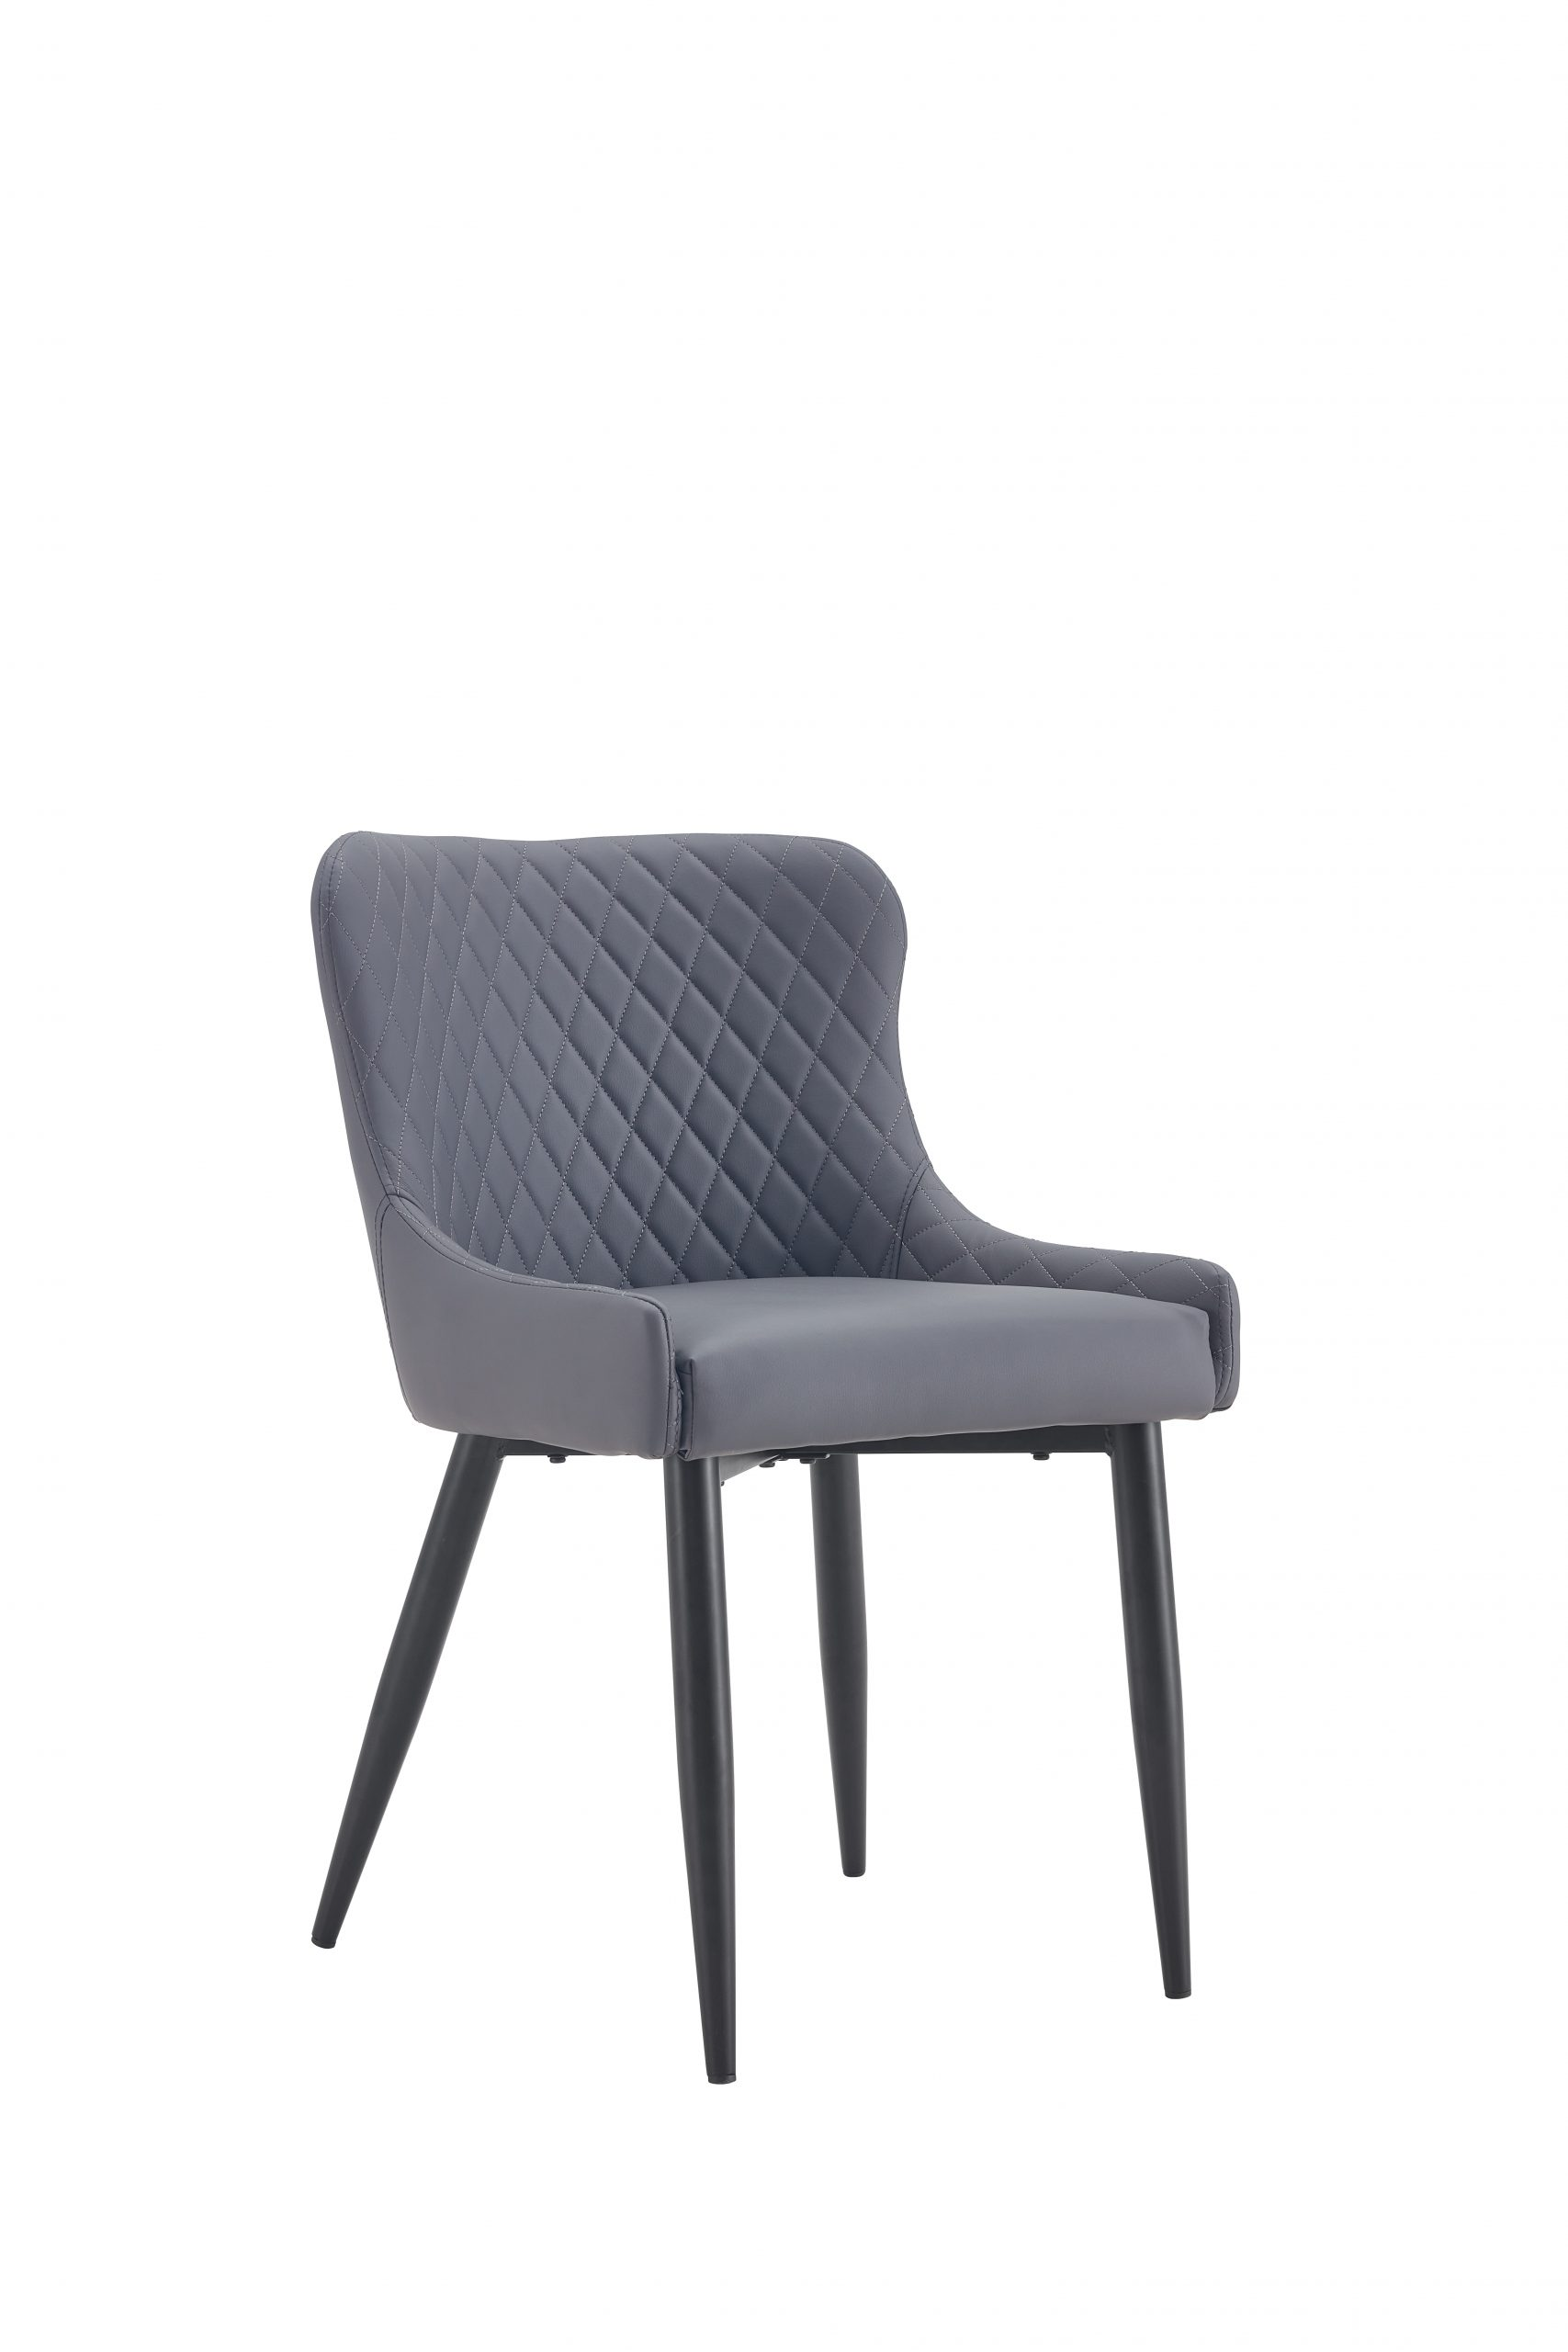 Newport Low Arm Chair